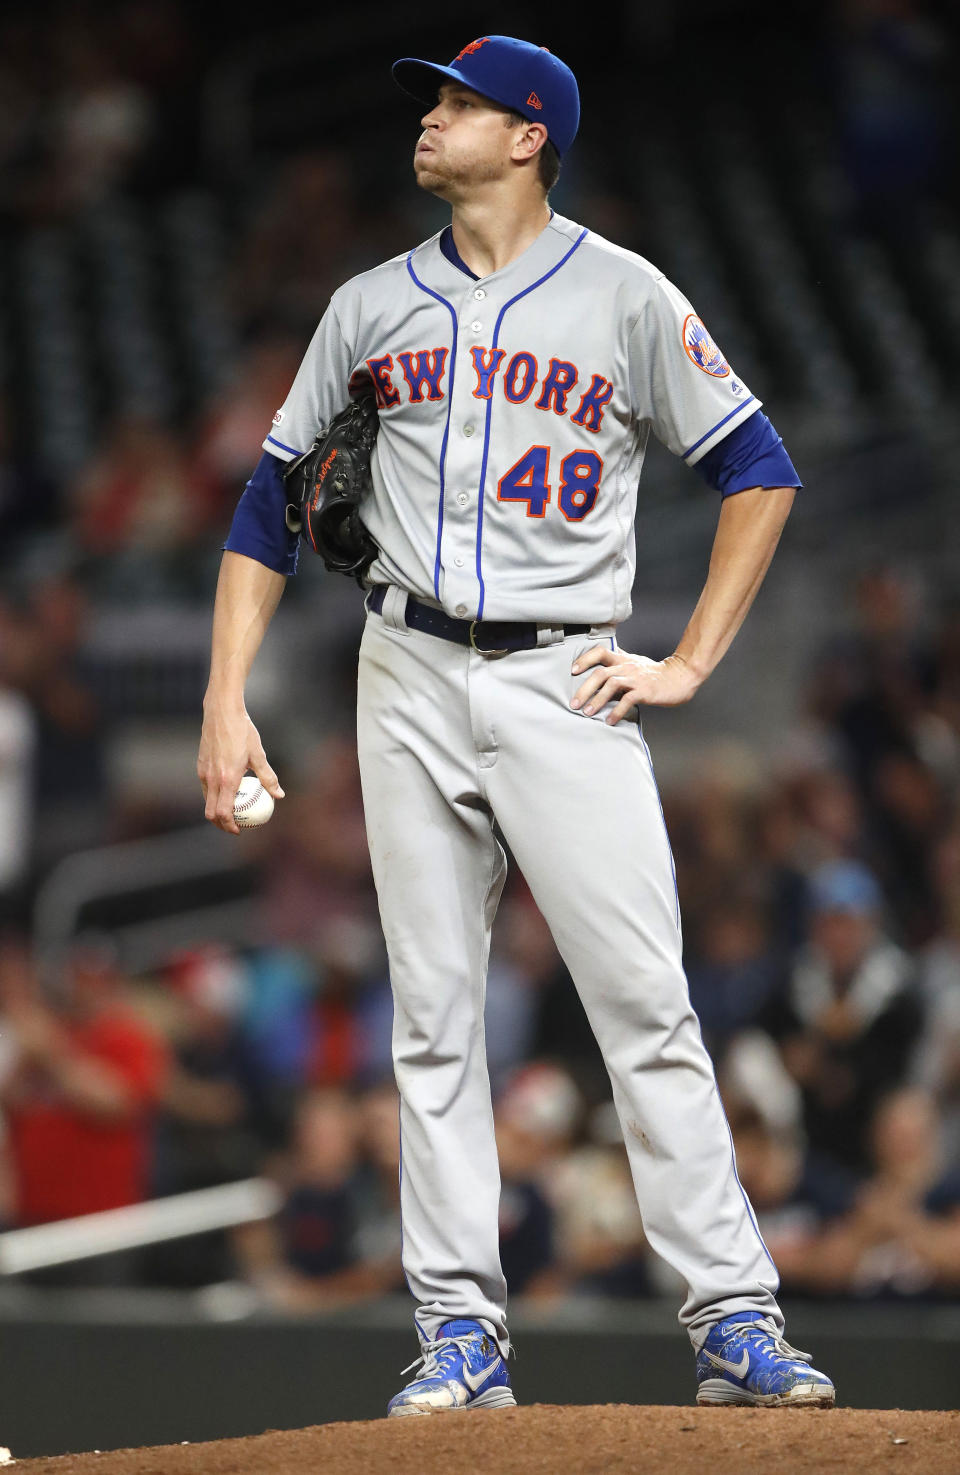 New York Mets starting pitcher Jacob deGrom (48) looks up at the scoreboard after losing his bid for a shutout on a home run by Atlanta Braves' Freddie Freeman in the ninth inning of a baseball game Tuesday, June 18, 2019, in Atlanta. New York won 10-2. (AP Photo/John Bazemore)